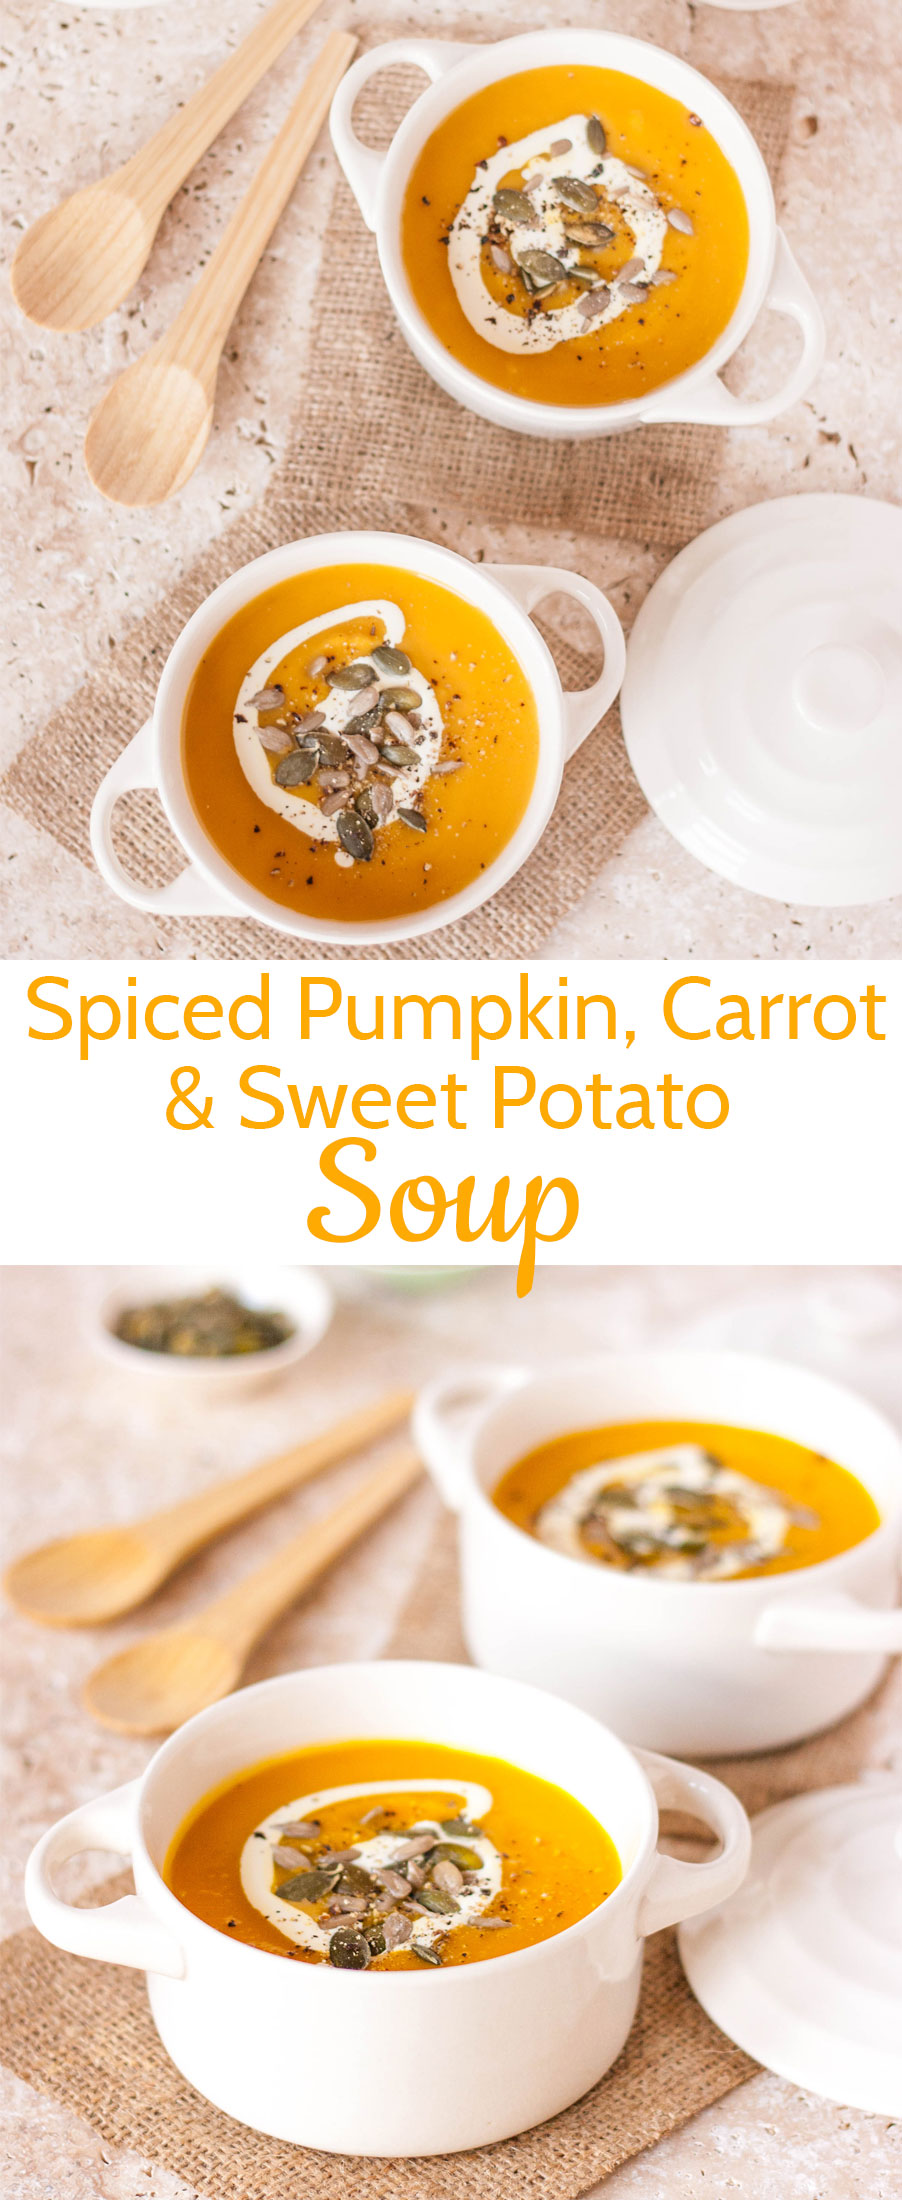 Overhead photo of creamy spiced pumpkin, carrot, and sweet potato soup topped with cream and roasted pumpkin seeds in white soup bowls and a front shot of the creamy soup with wooden spoons in the background with text overlay.